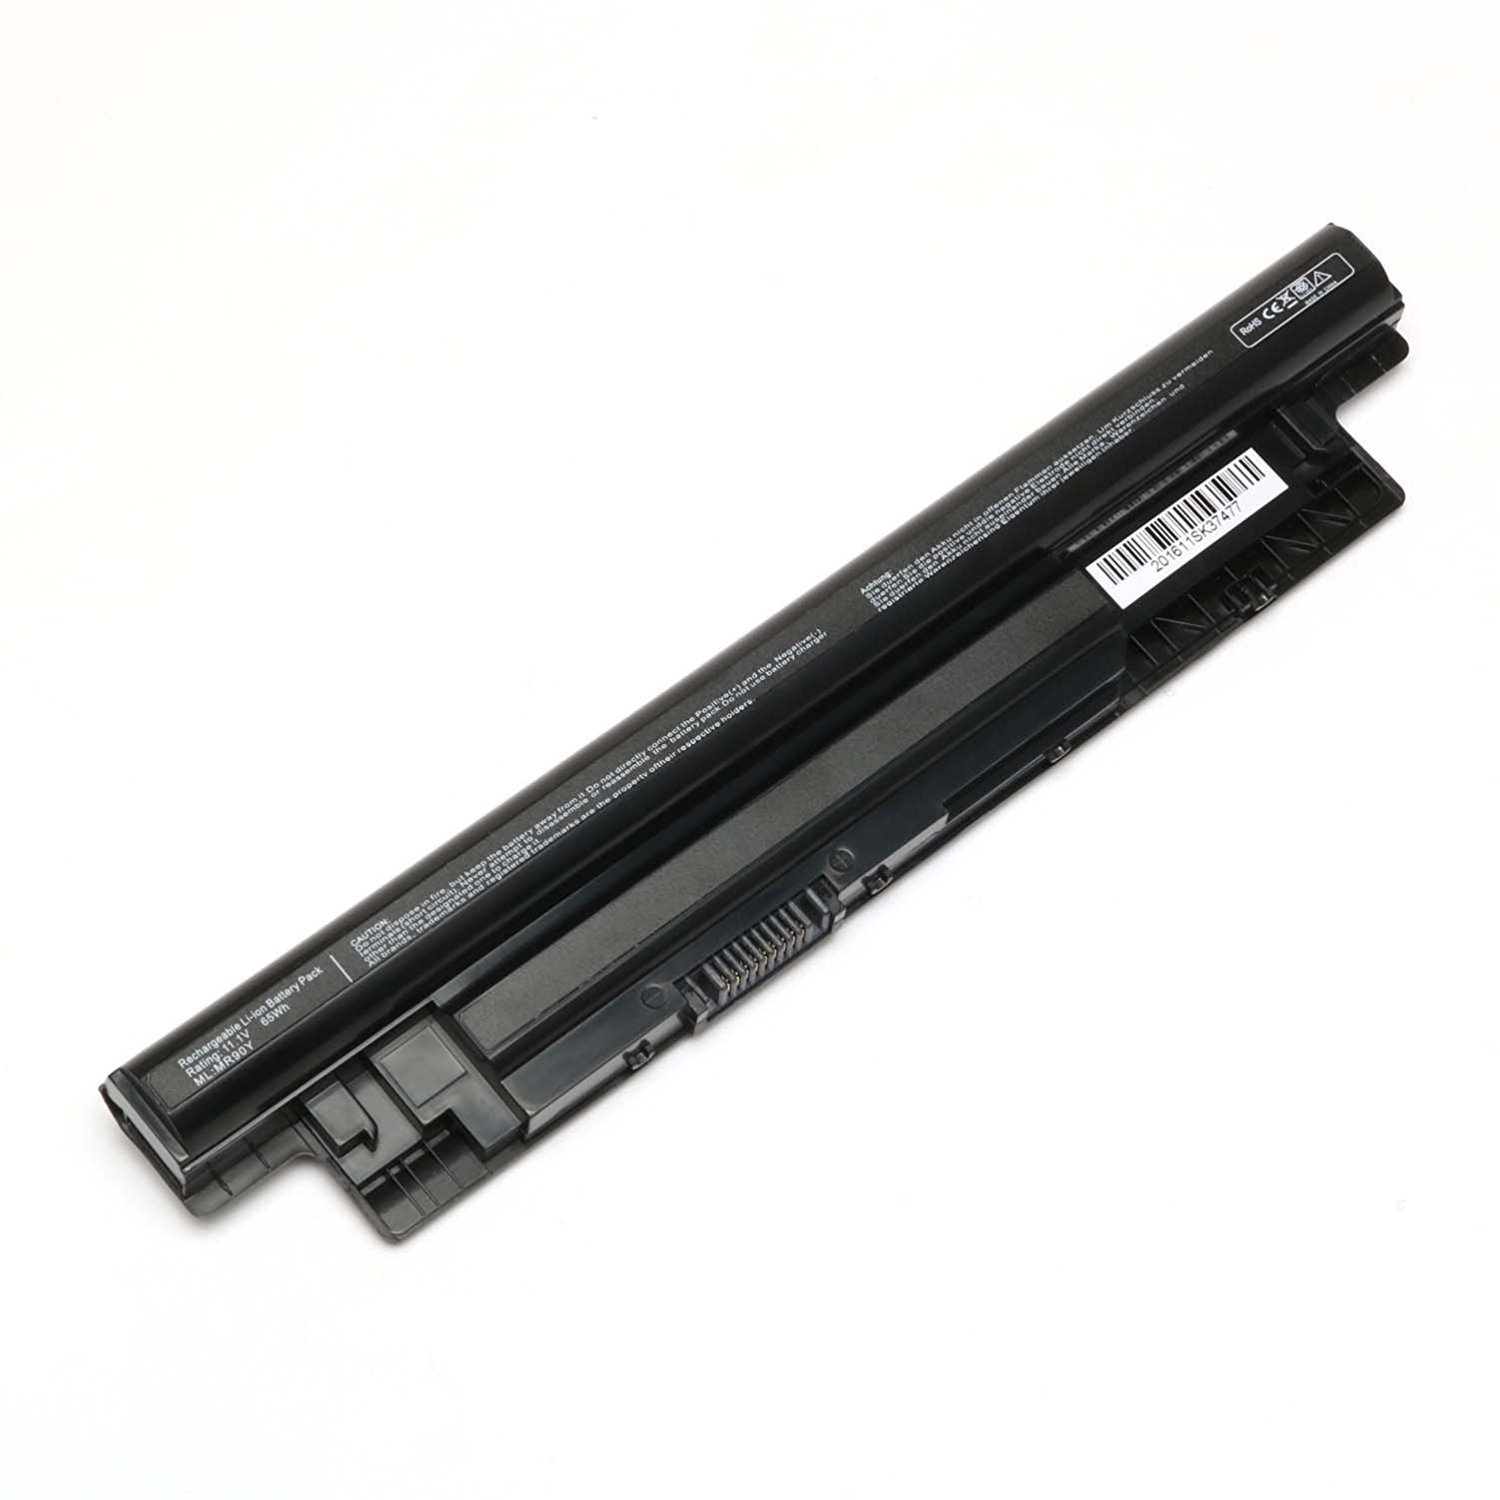 SLE-TECH Rechargeable Li-ion Battery 11.1V 65WH for MR90Y Dell Laptop Battery N121Y DELL Inspiron 3421 5421 3521 5521 3721 5721 14 15 17 Series